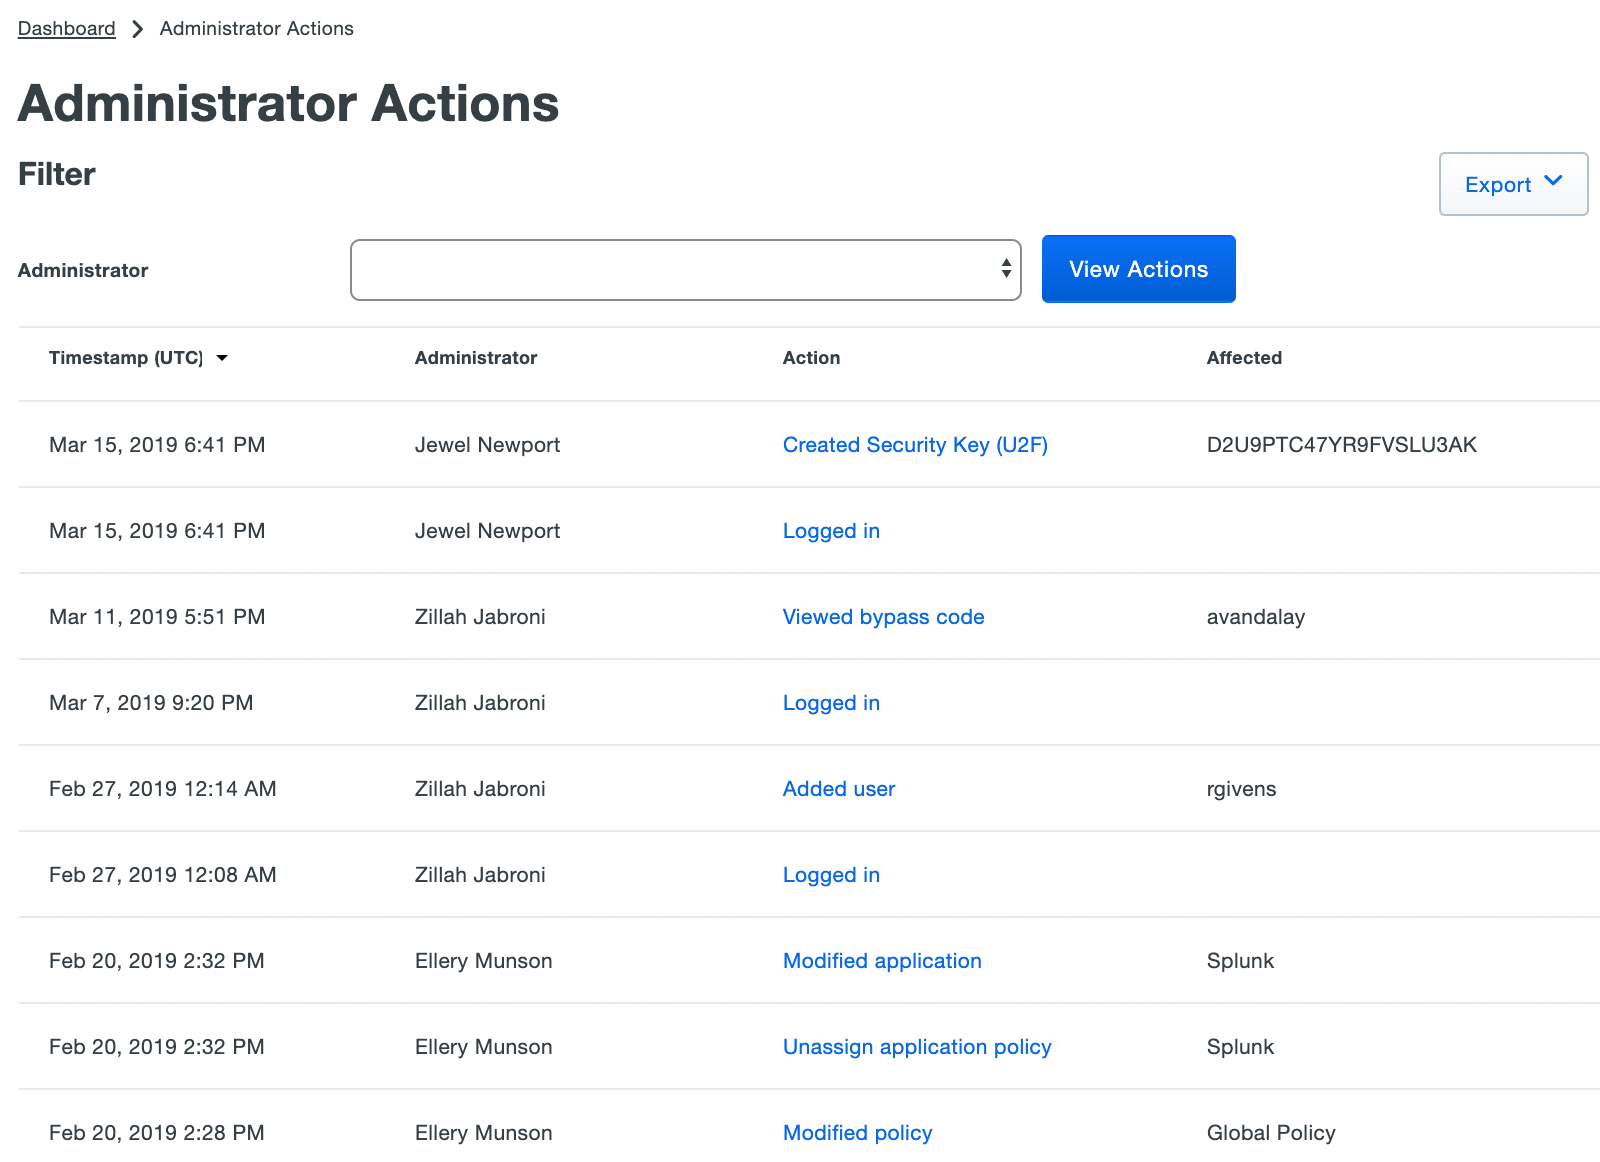 Administrator Actions Log